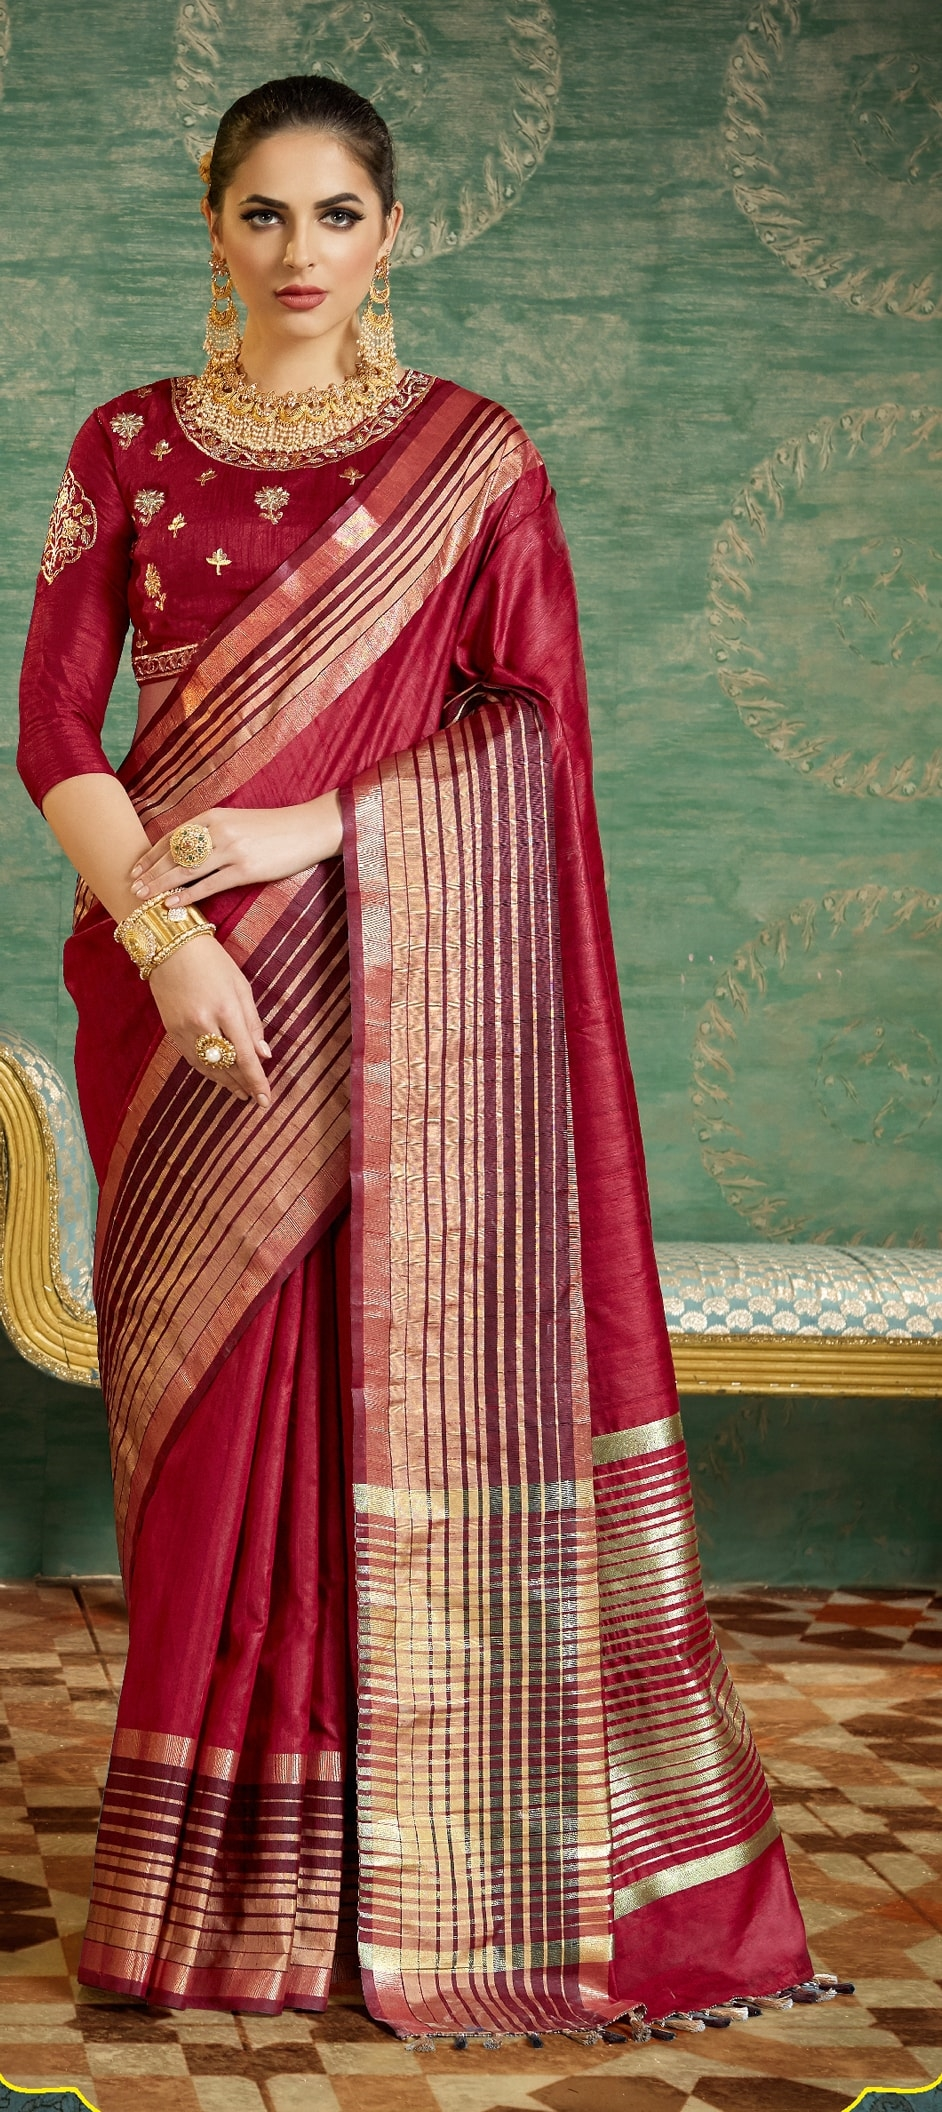 769663: Red and Maroon color family Party Wear Sarees, Traditional ...